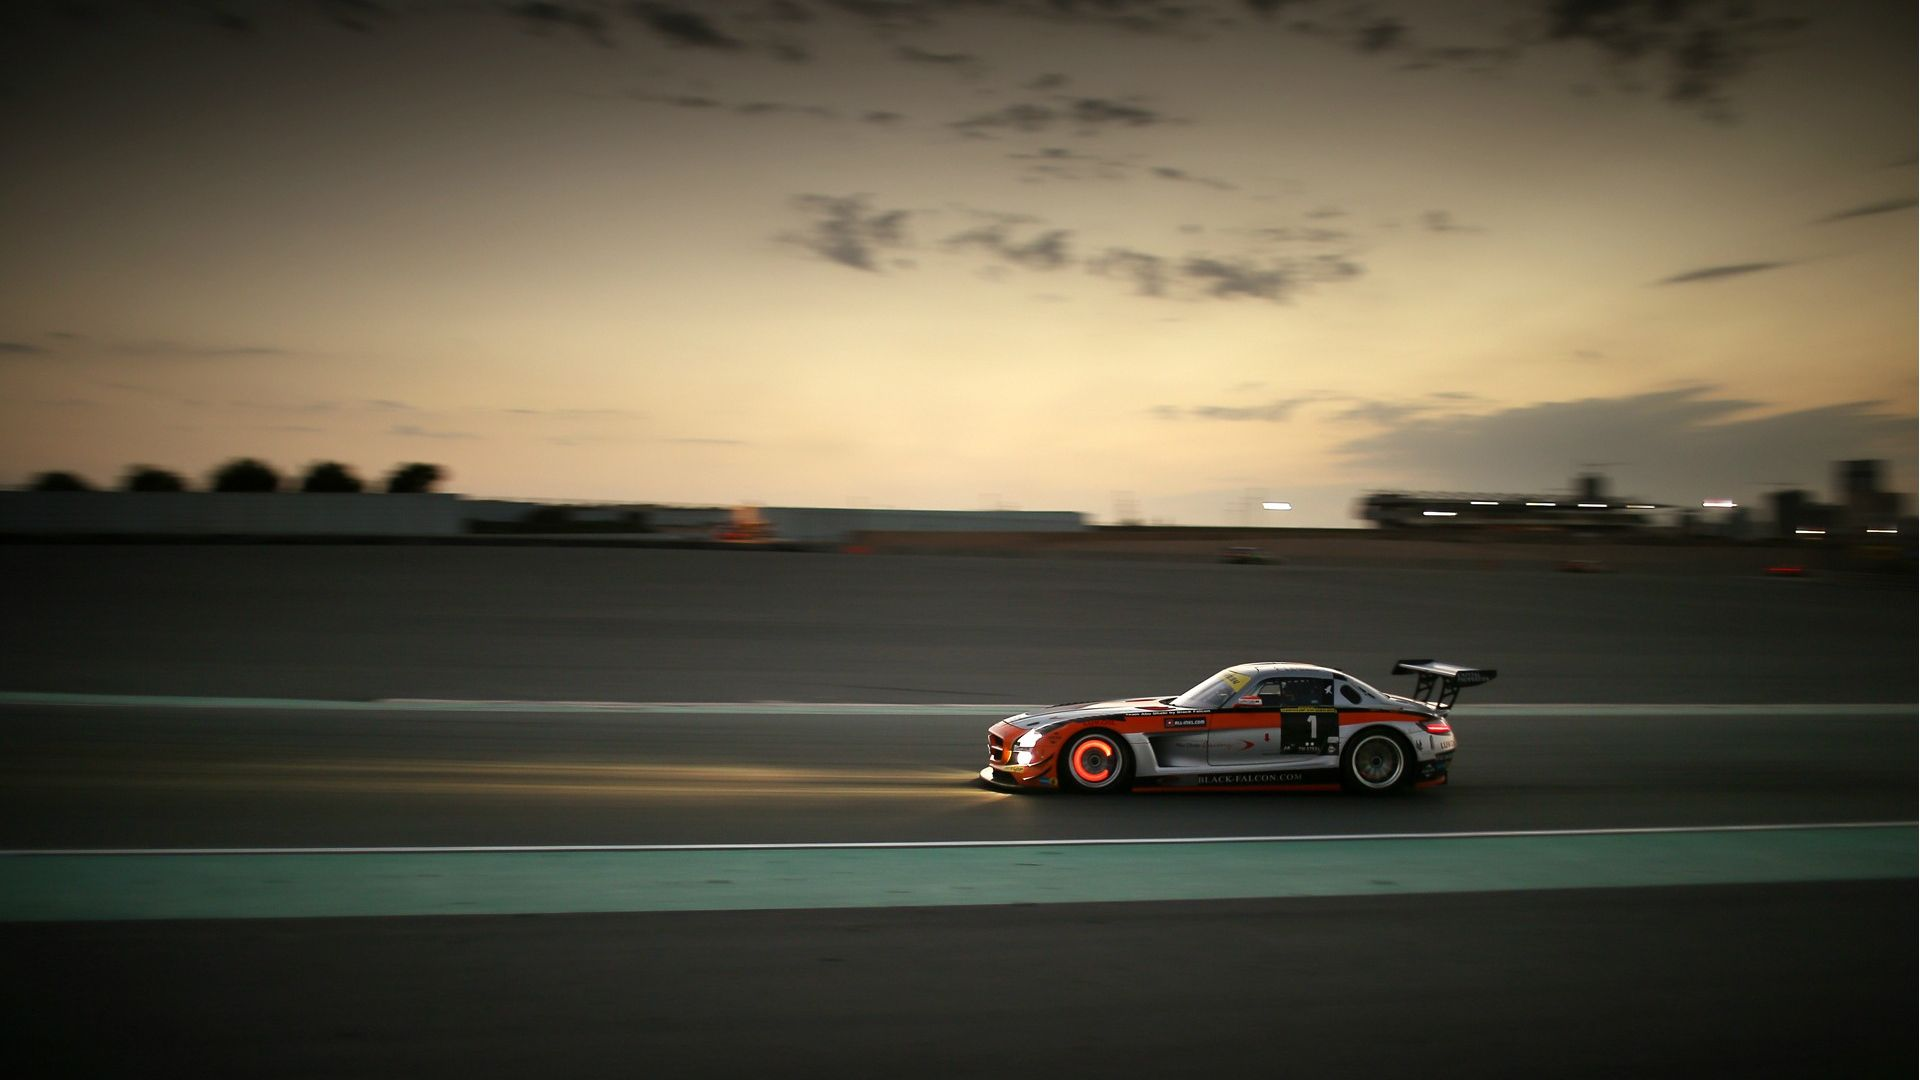 cable car,mutant,railcar,mercedes hd,panorama,sportswoman,view,automobile,sls,thought,mercedes,evening,sport,auto,lark,persuasion,racing,cars,car